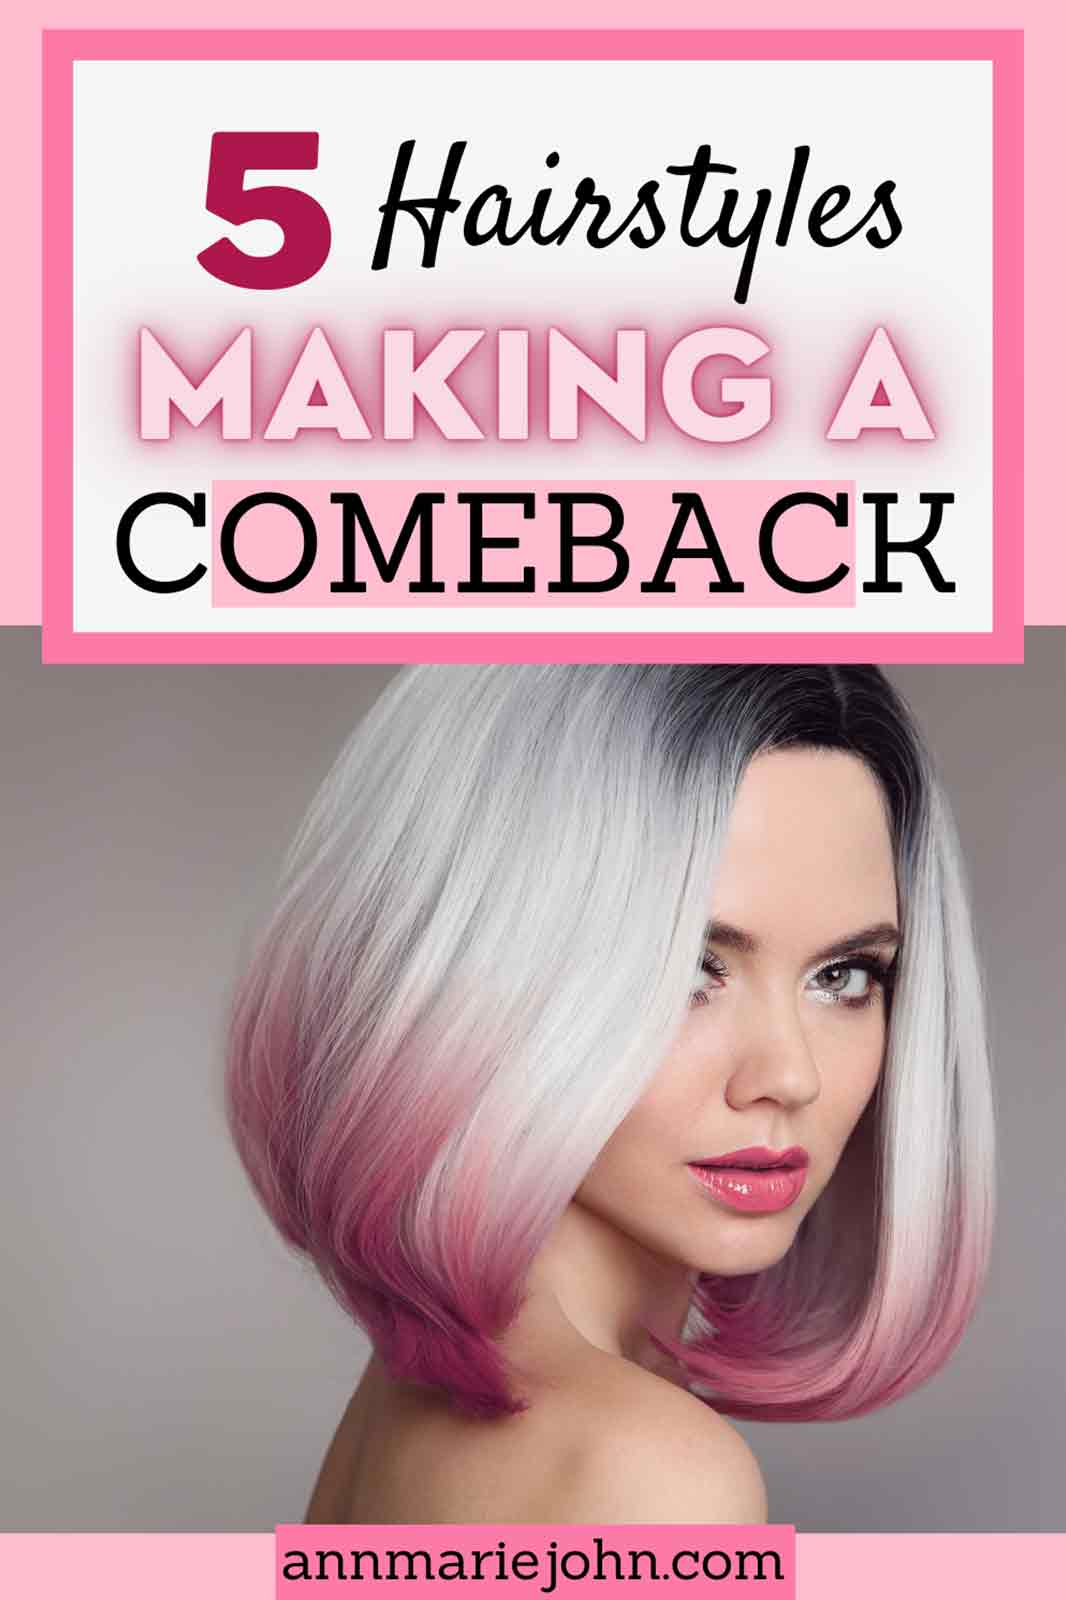 Hairstyles That Are Making A Comeback